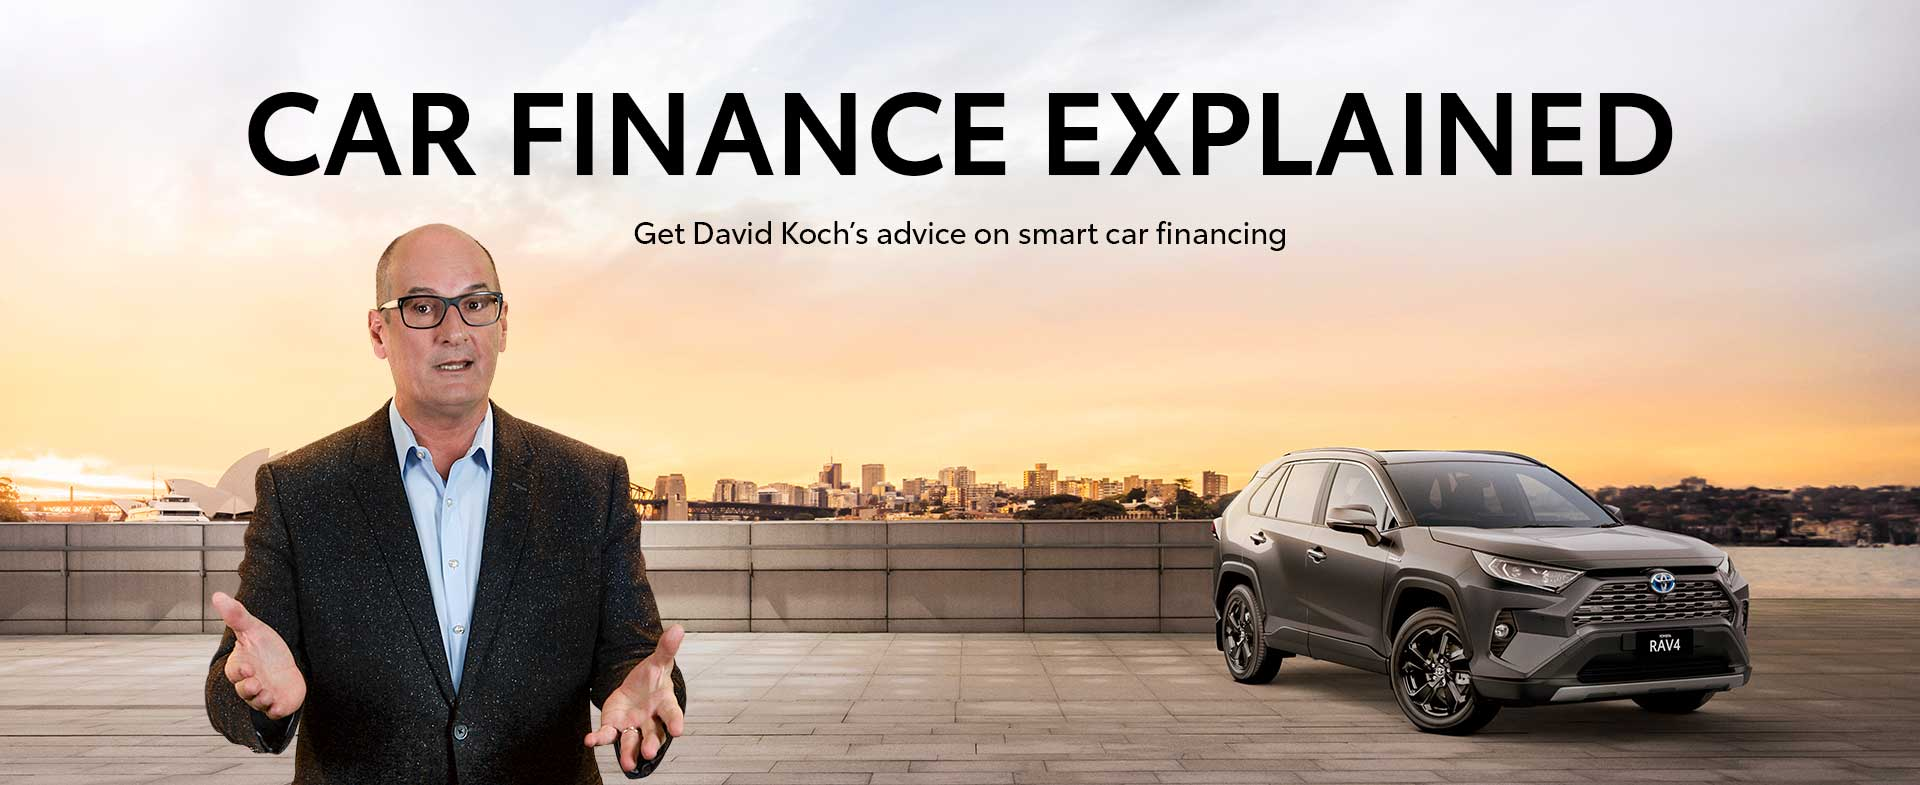 Get Kochie's advice on smart car financing.